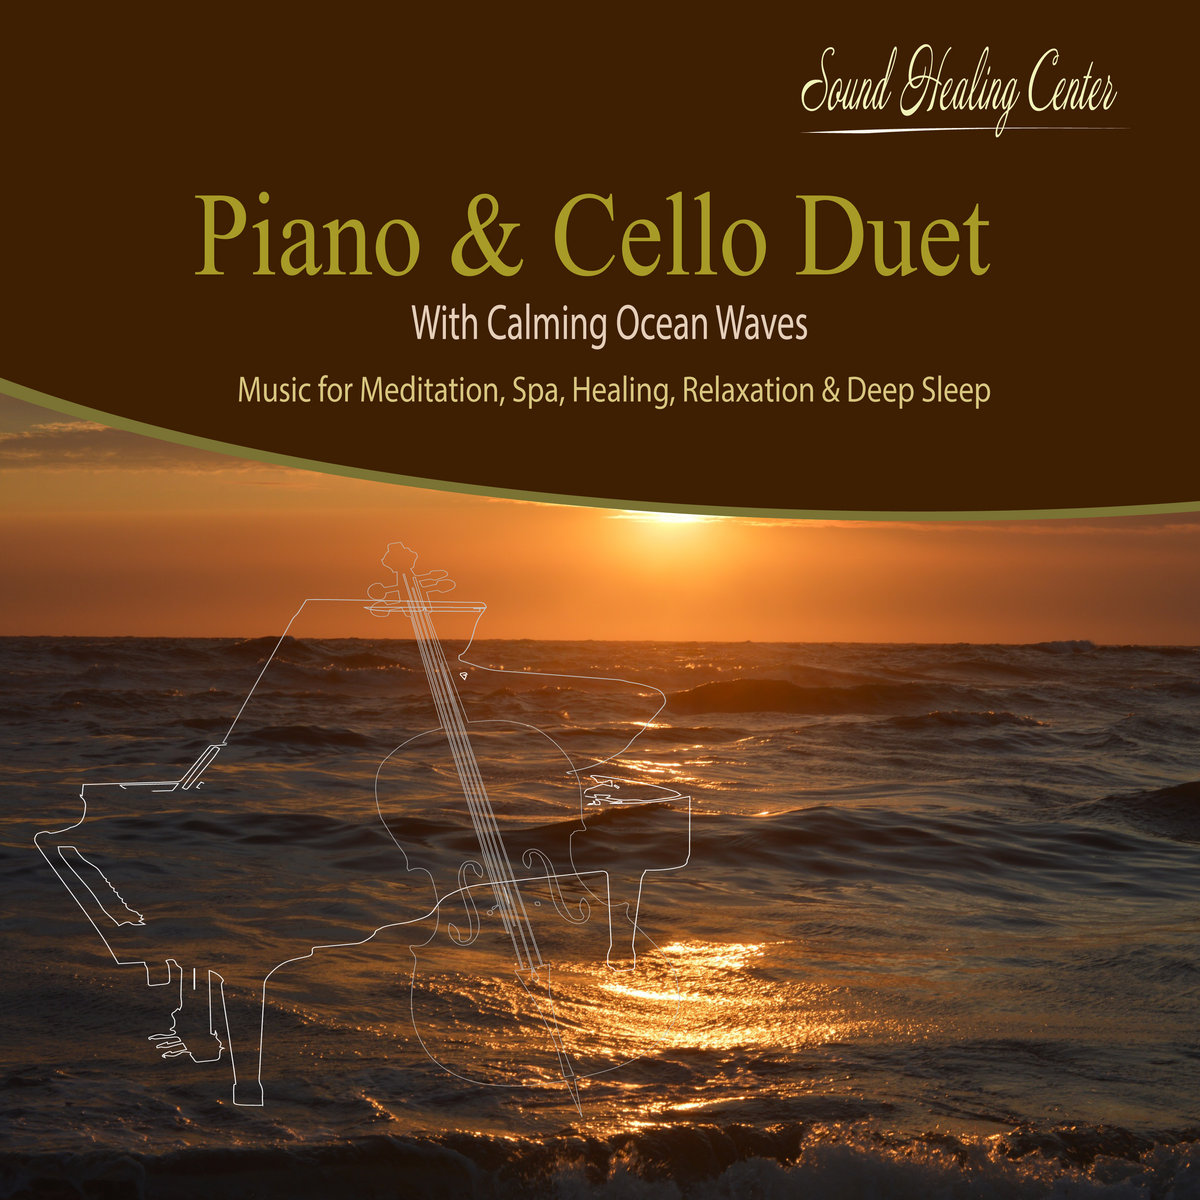 Piano & Cello Duet with Calming Ocean Waves   Relaxation